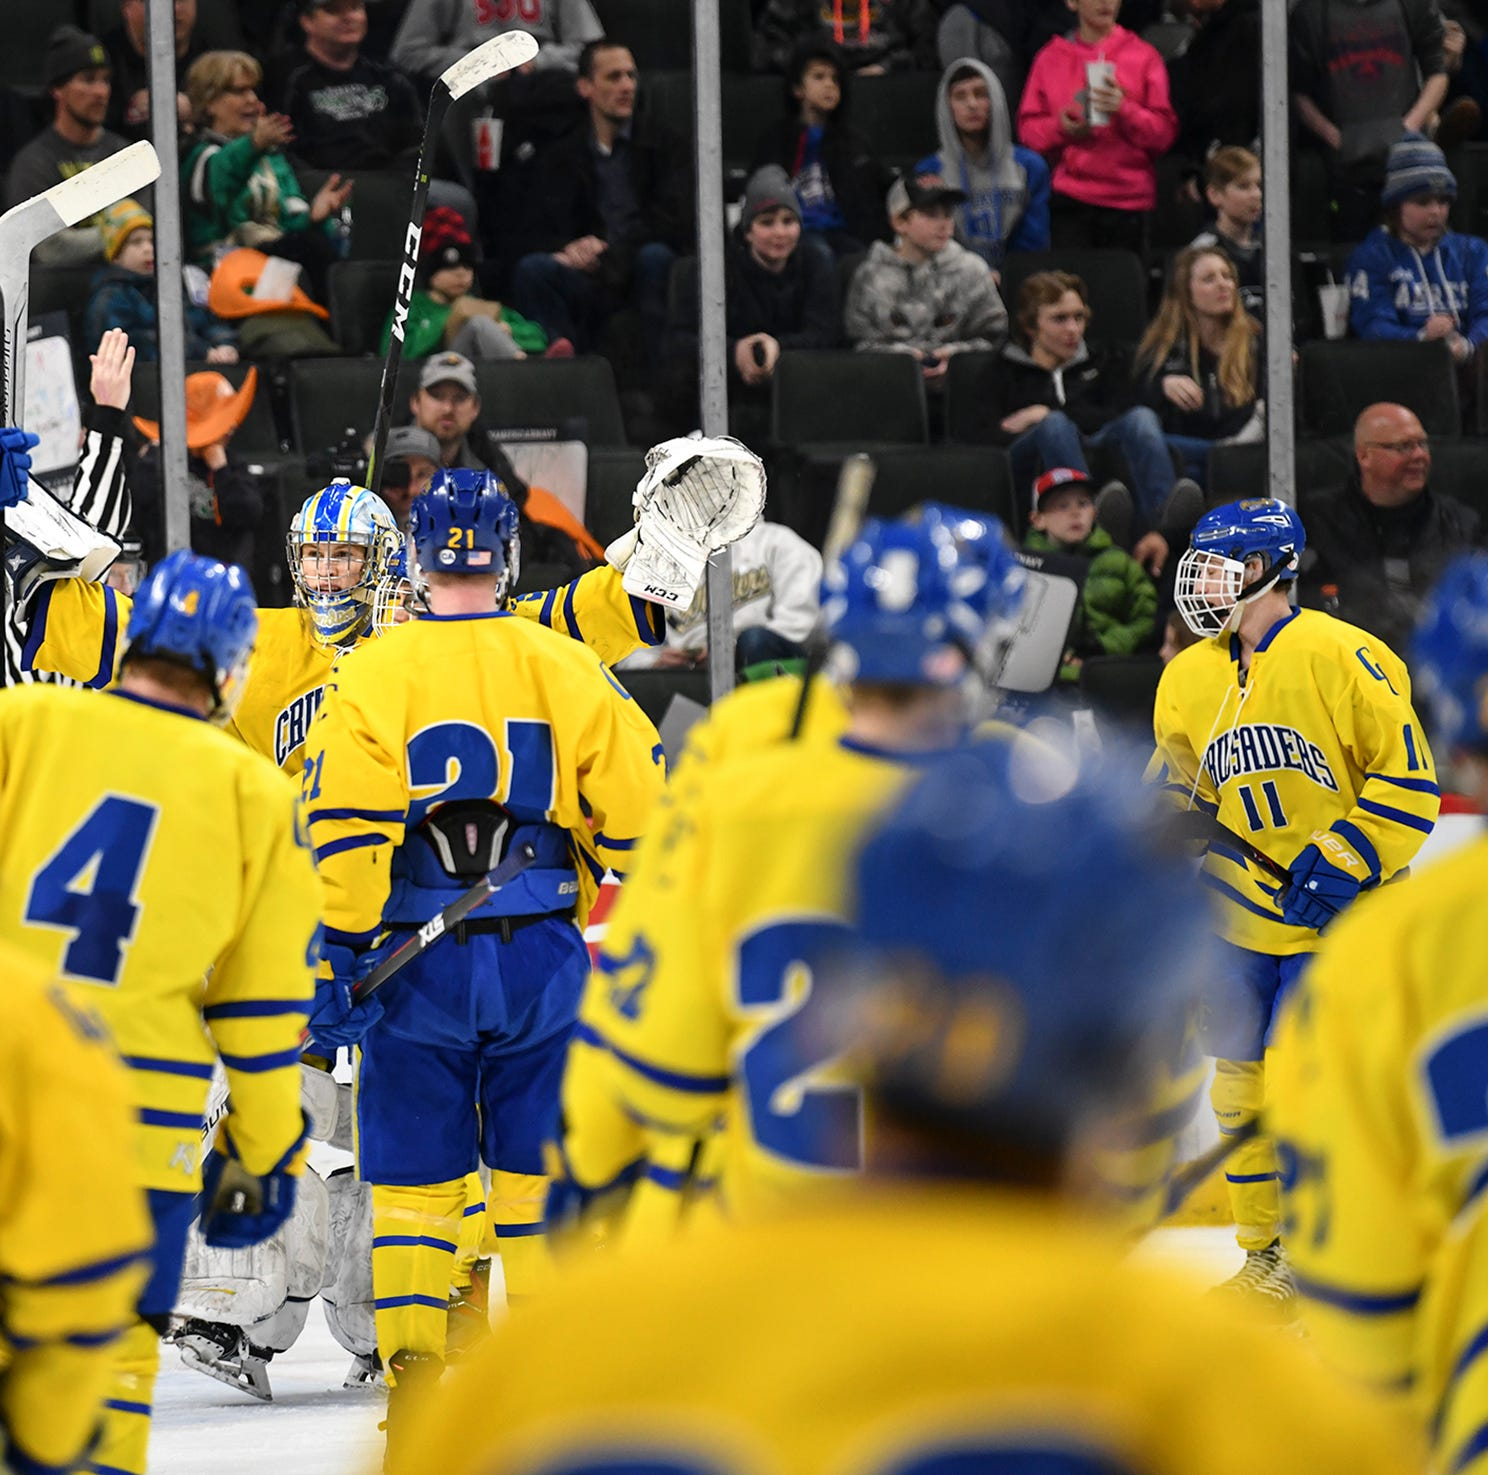 Live updates: Cathedral vs. Greenway in state championship hockey